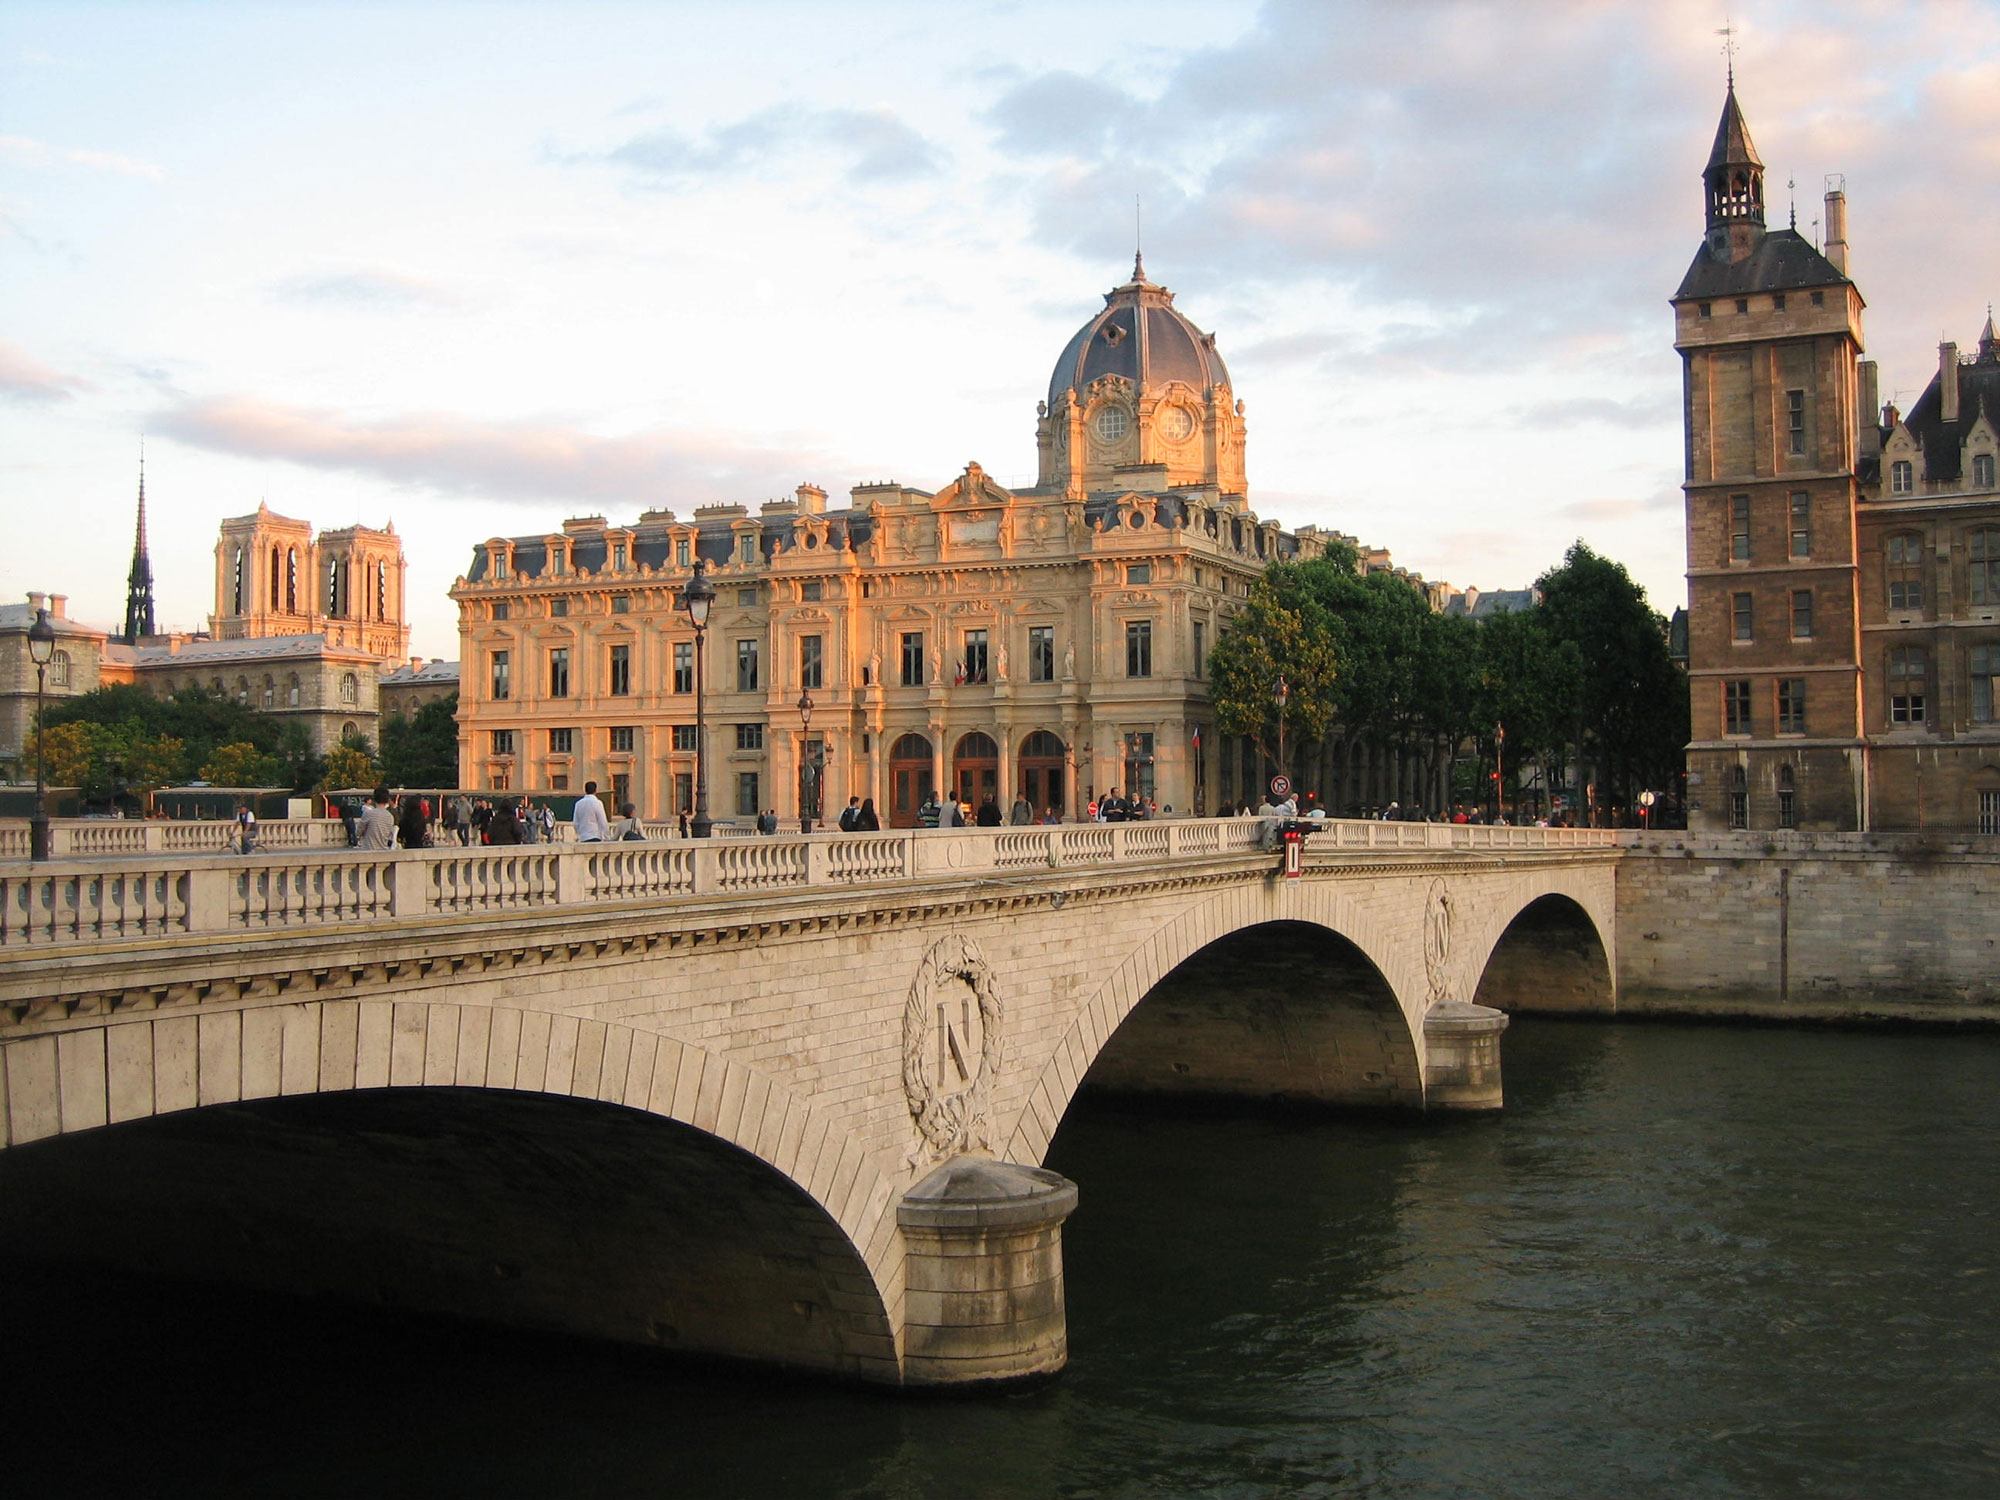 The late afternoon sun illuminates the monuments of Paris along the Seine.